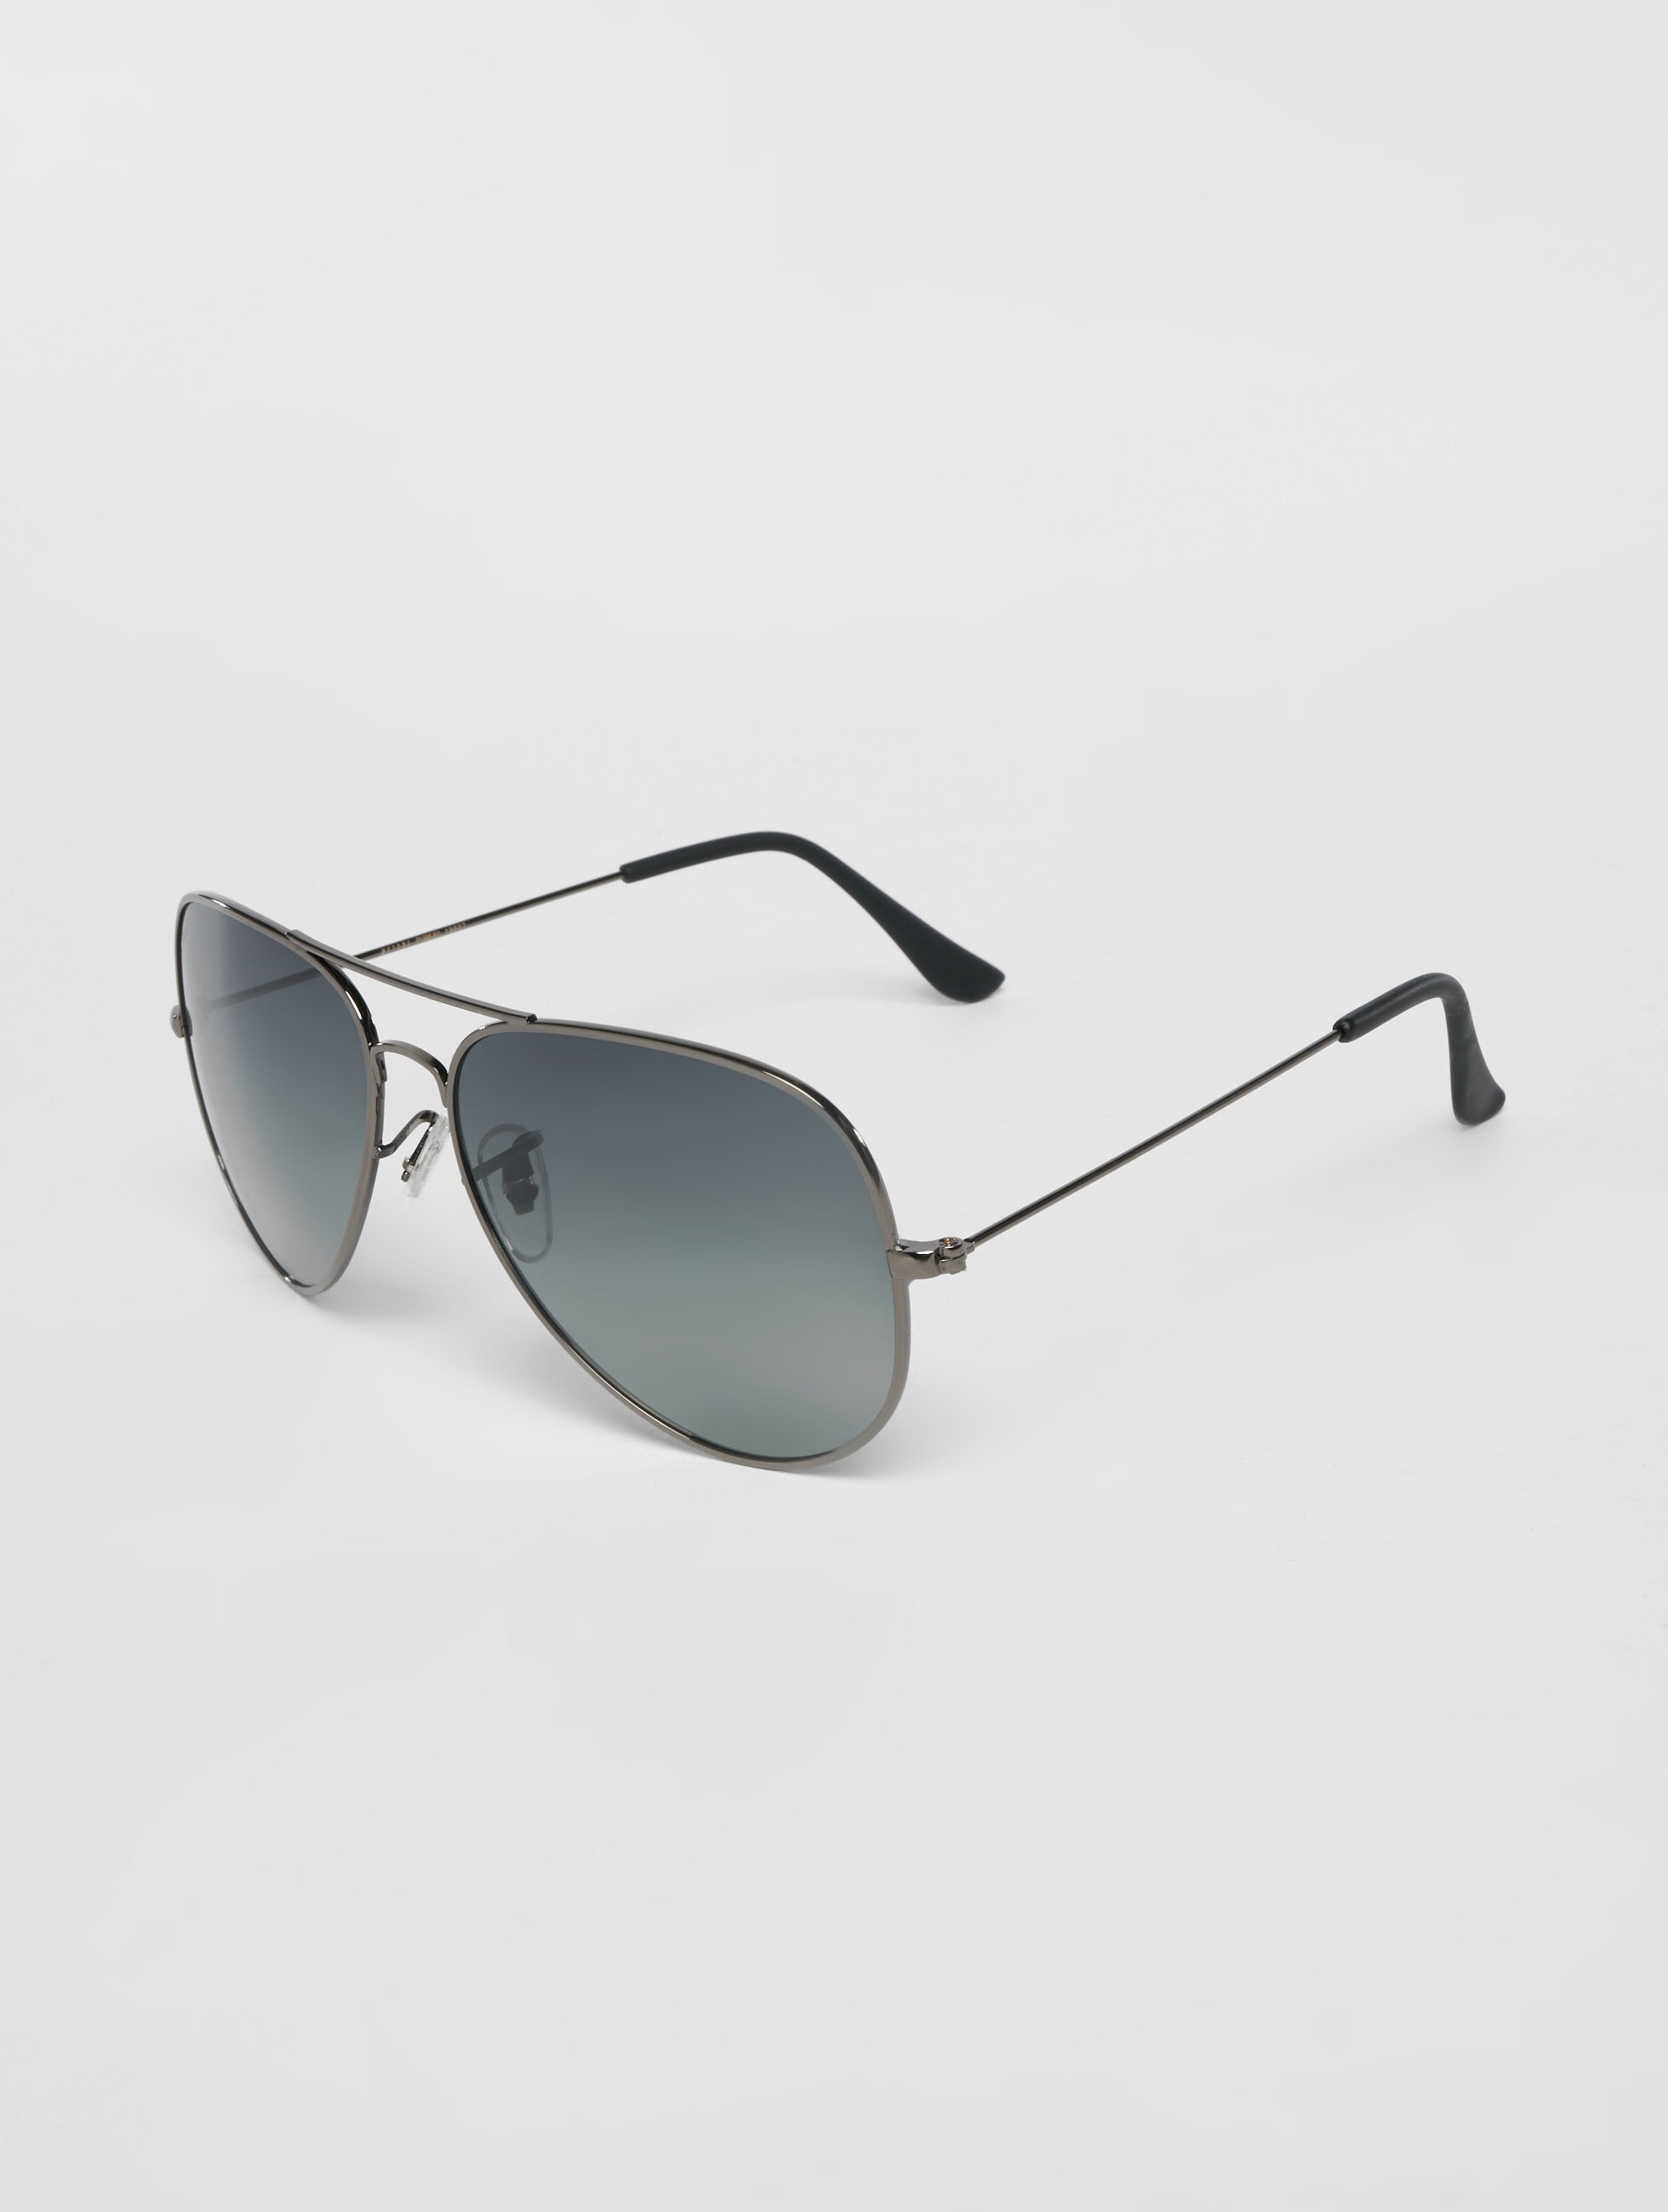 MSTRDS Sunglasses Pure AV Polarized Mirror silver